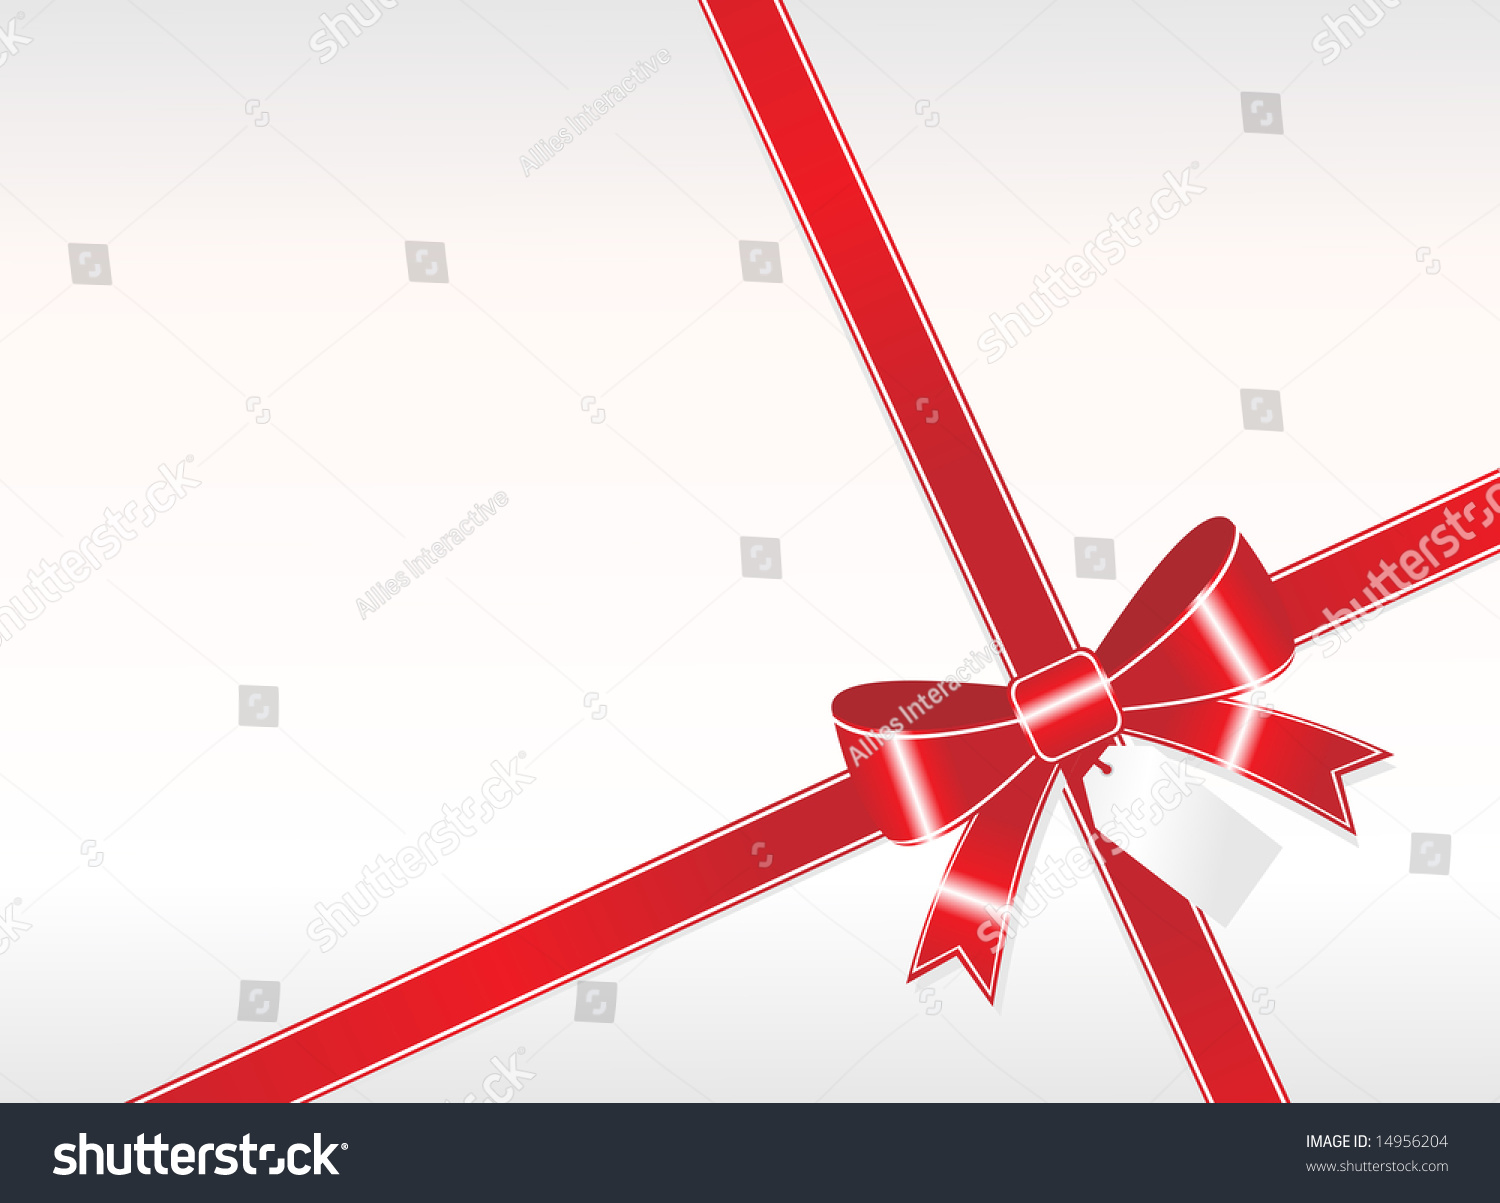 Simple Red Ribbon Tag On White Stock Vector 14956204 - Shutterstock for Simple White And Red Wallpaper Designs  54lyp